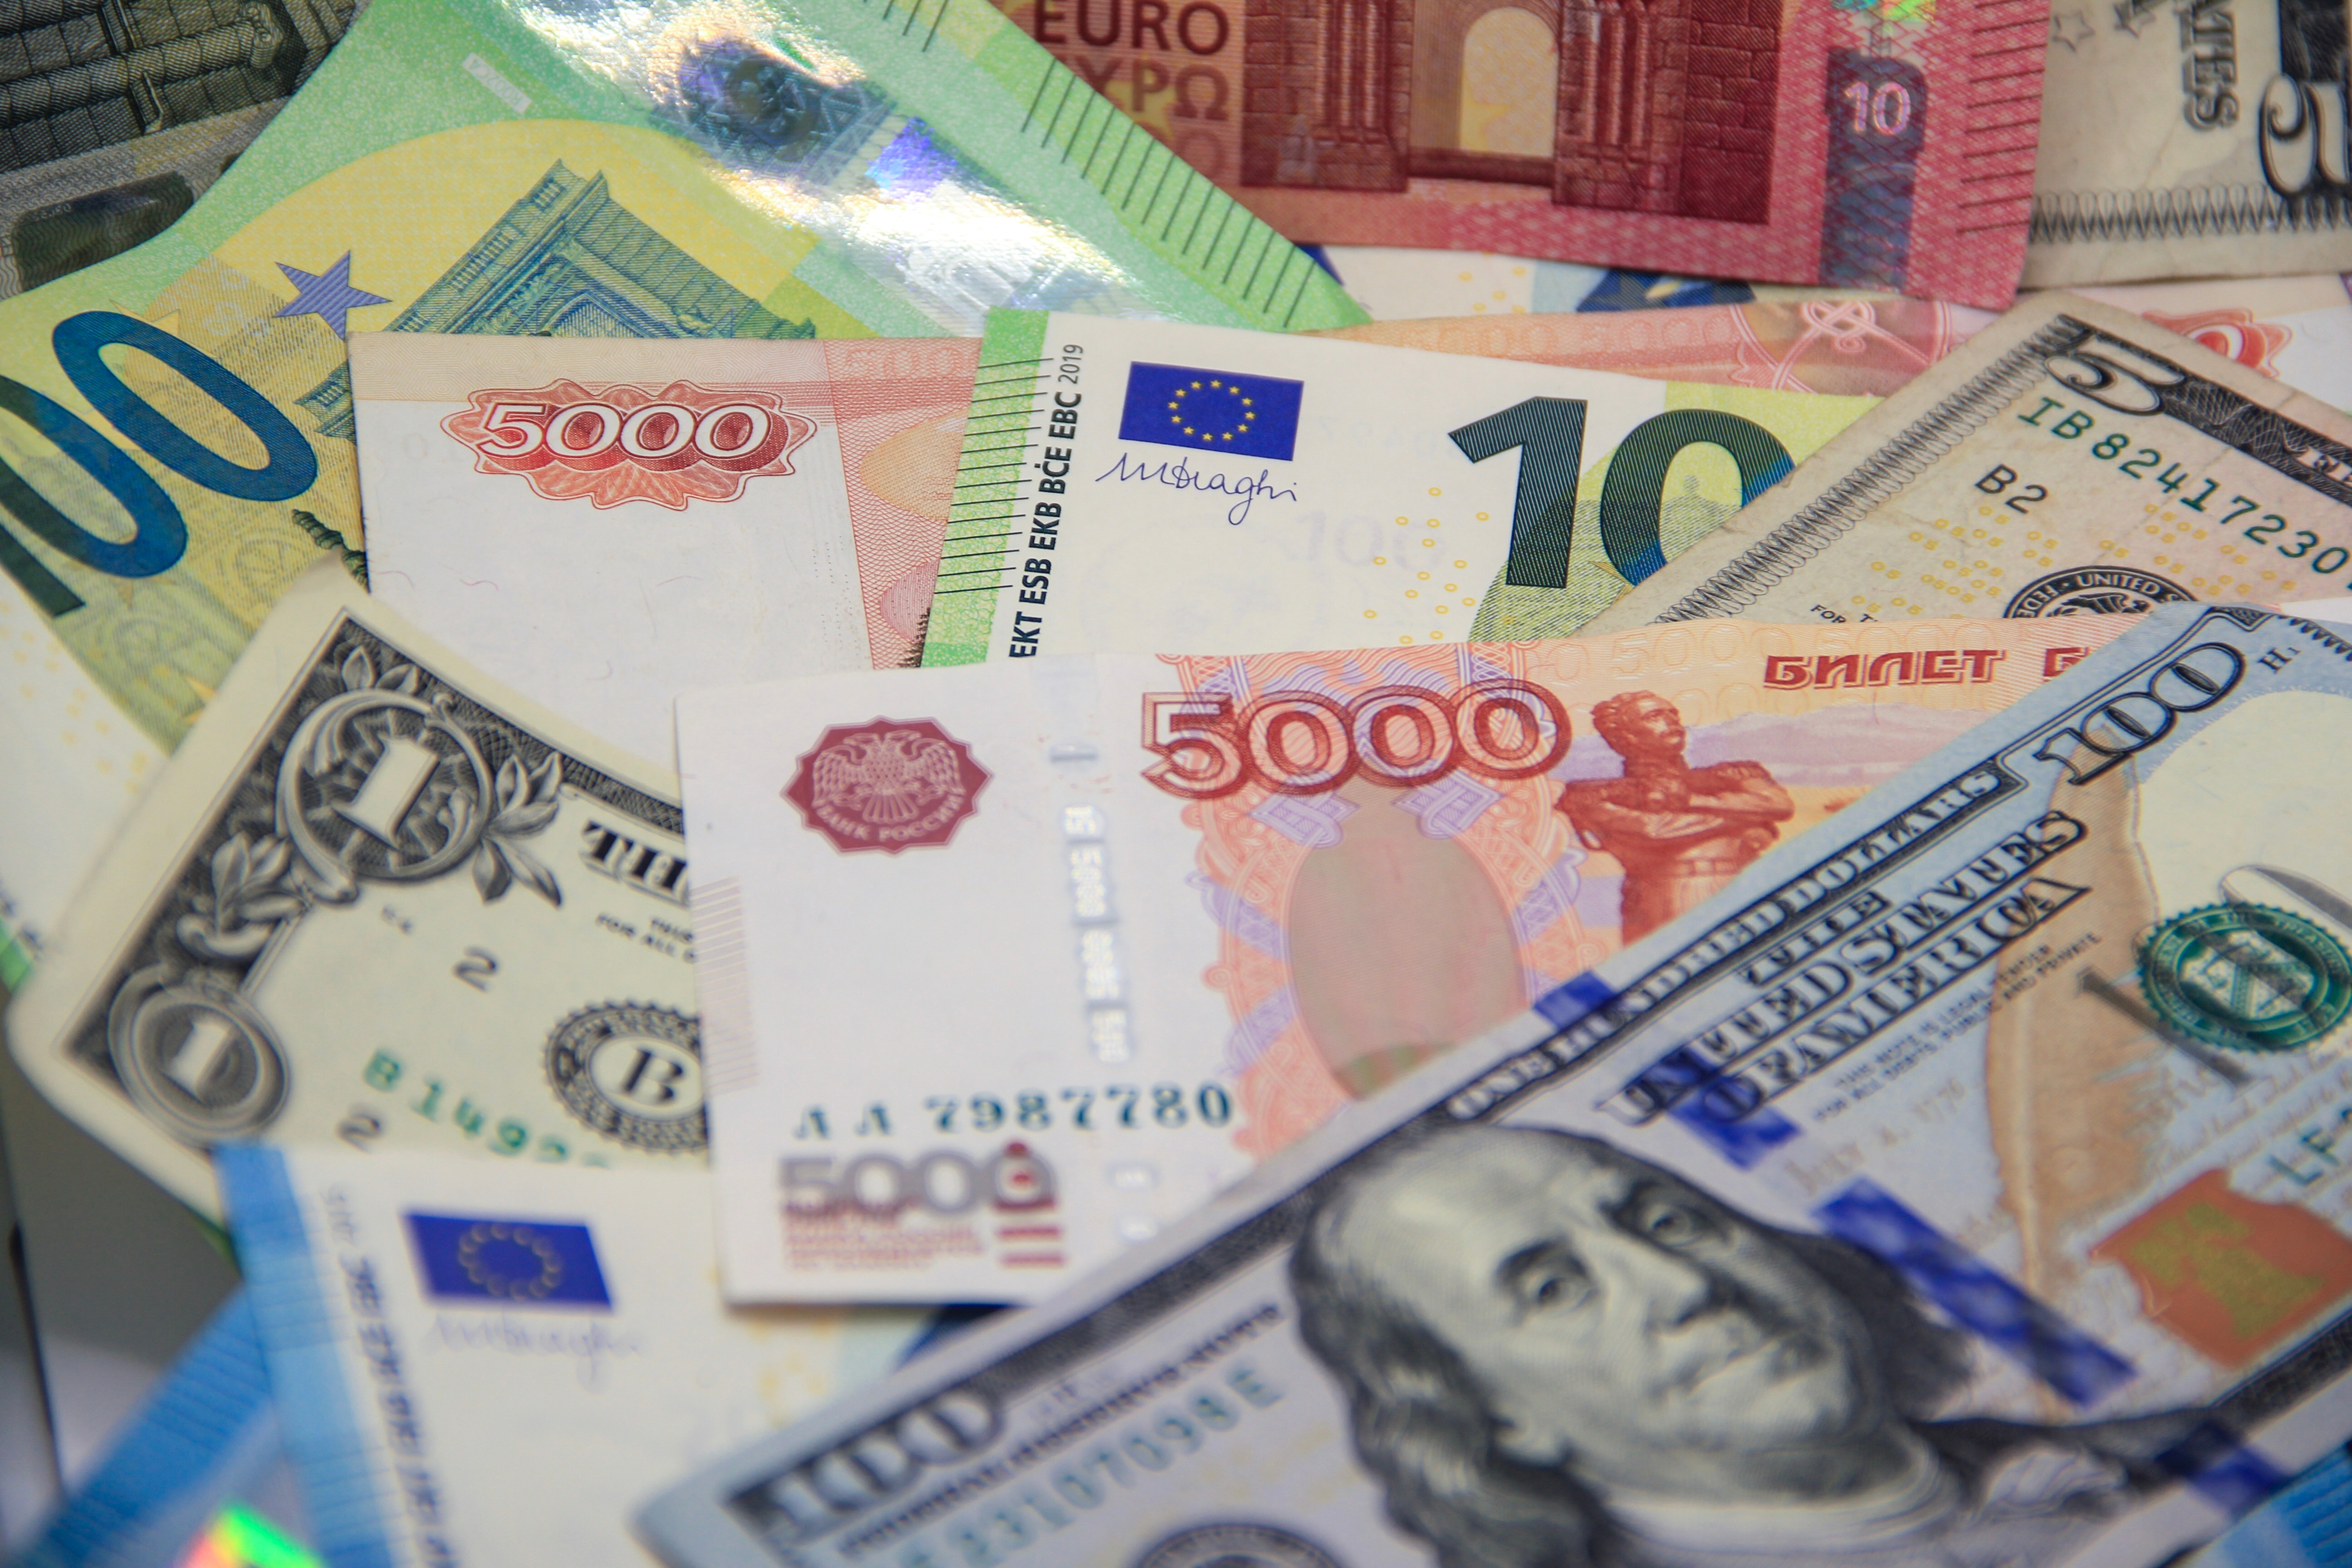 A country's money supply is measured according to four liquidity-based metrics.